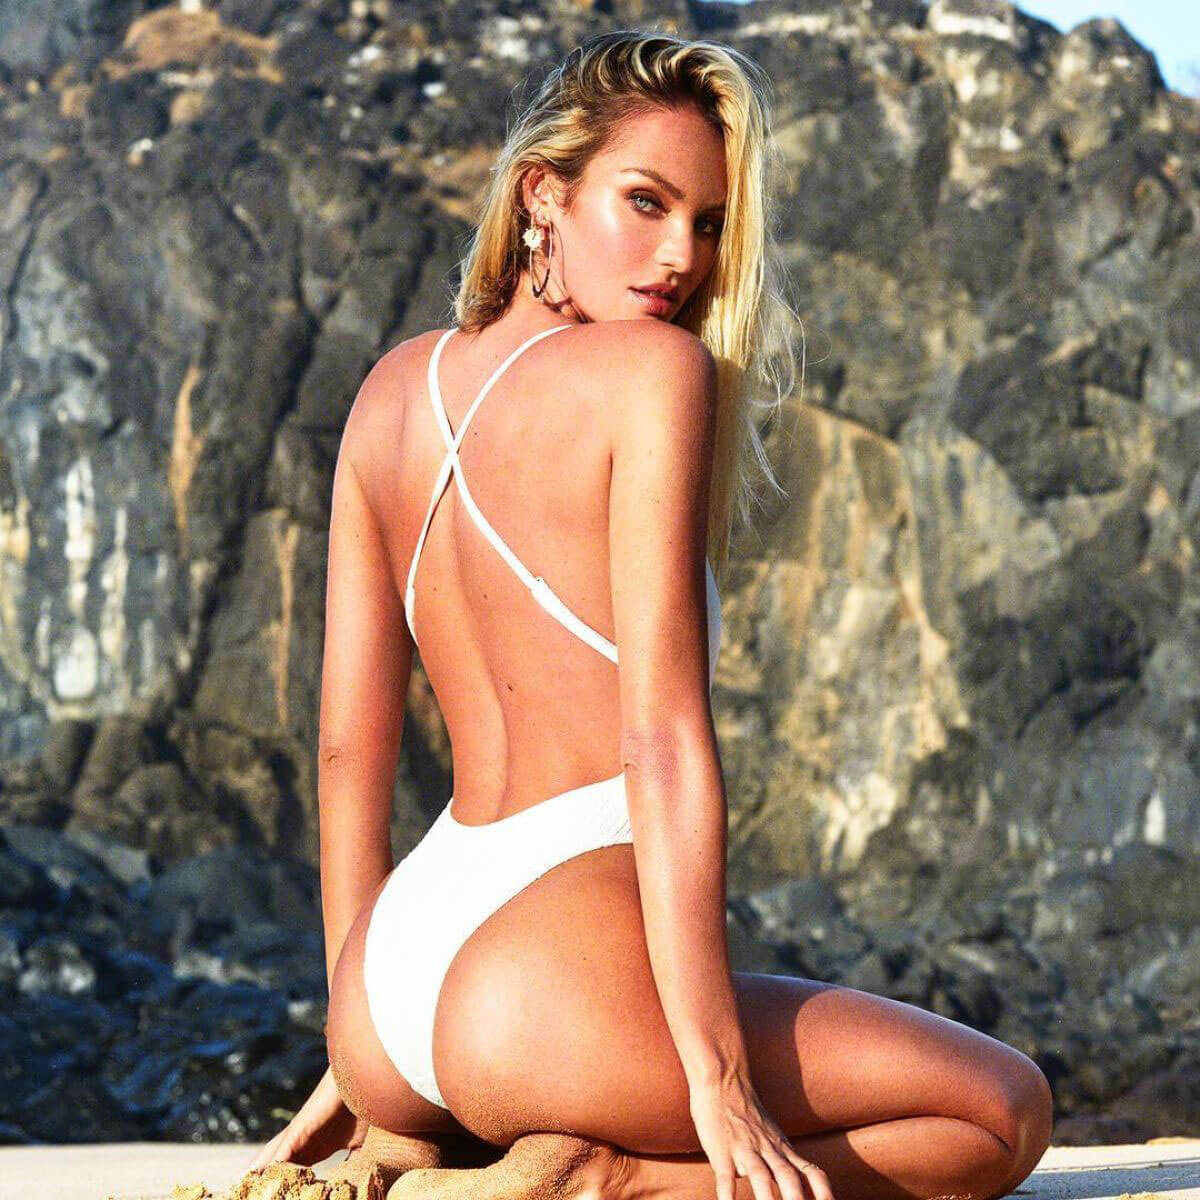 Candice Swanepoel Poses for TropicofC, Swimwear Collection